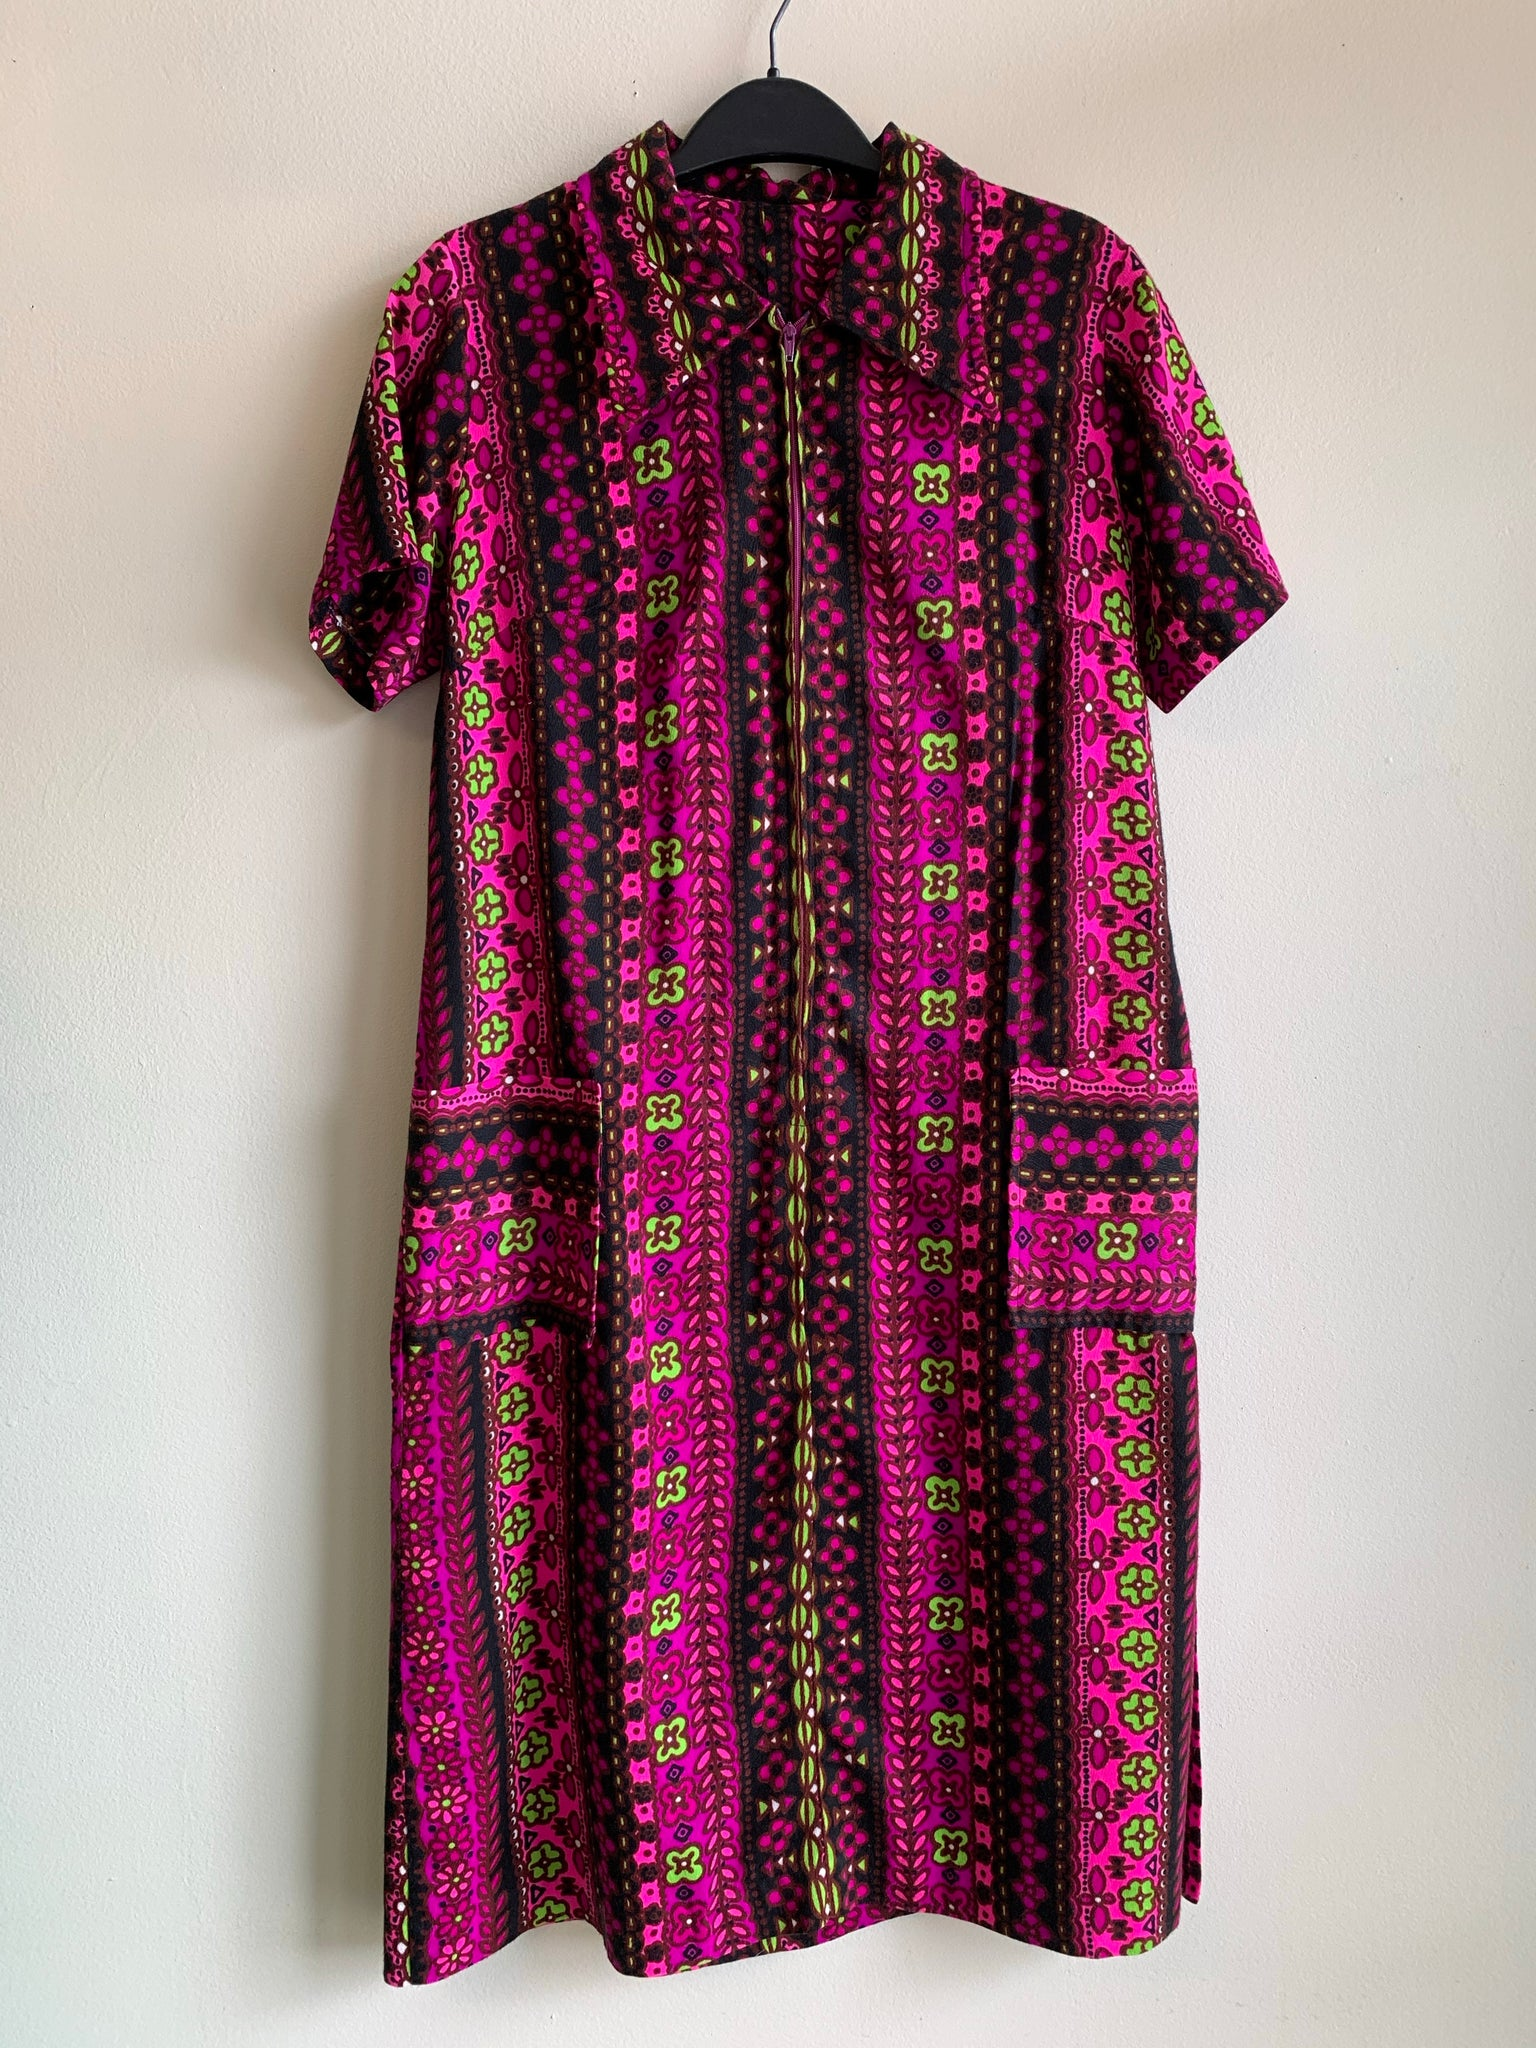 Psychedelic 70's housedress